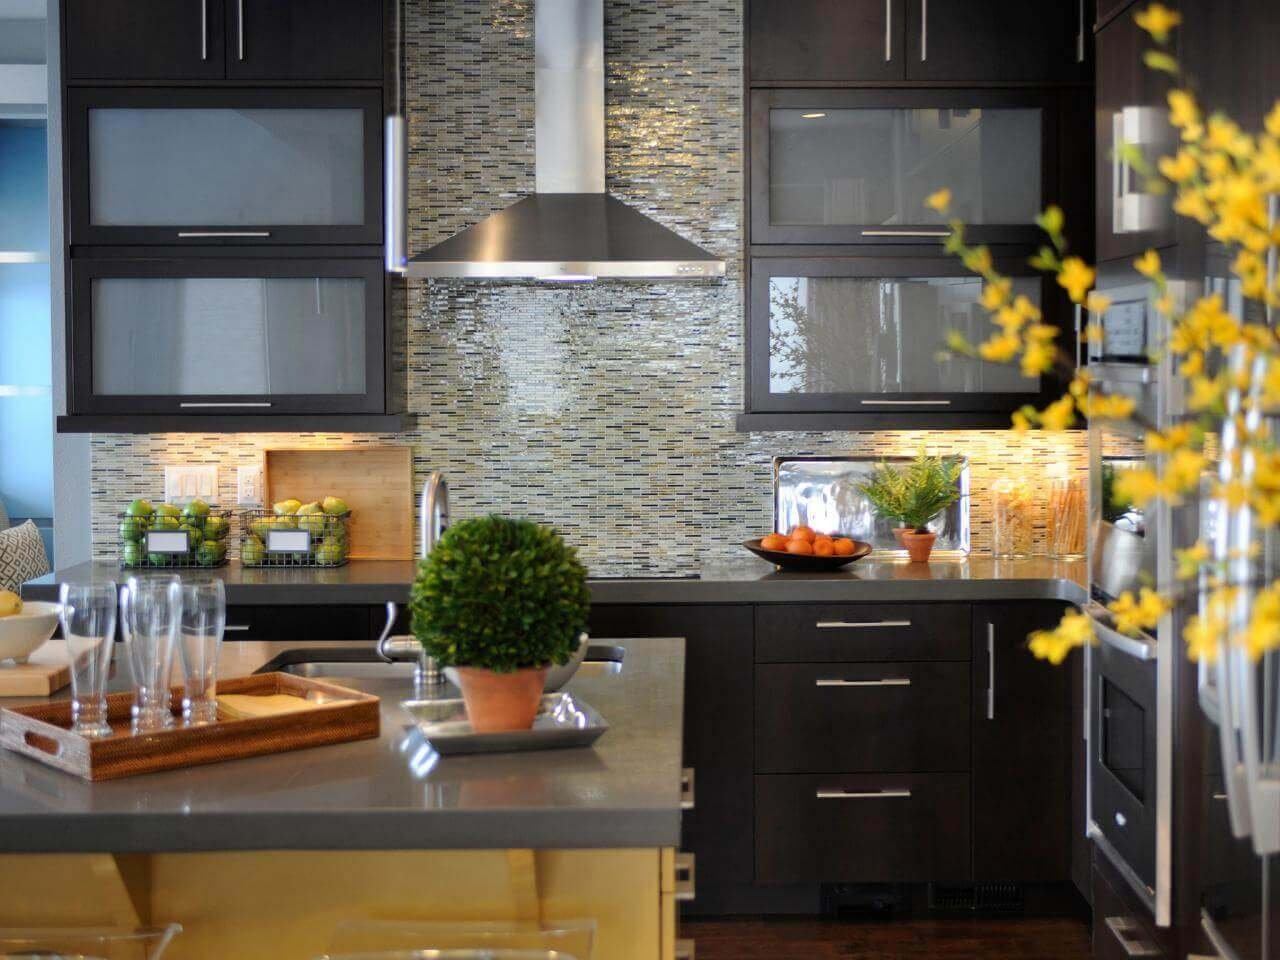 Modern Kitchen Tiles Backsplash Ideas